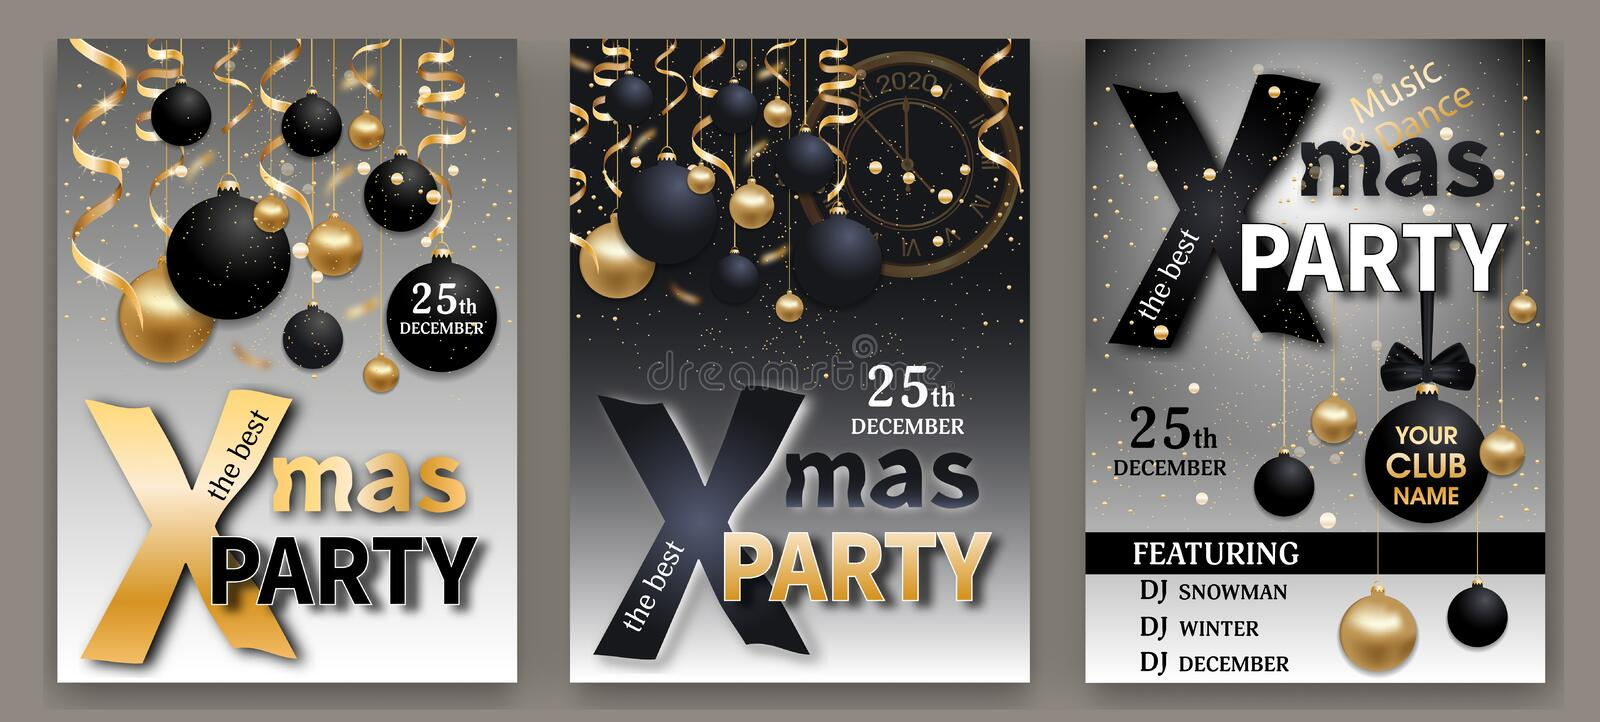 Christmas Party invitations templates. Set Xmas and New Year elegant backgrounds black and grey color decorated black and gold vector illustration